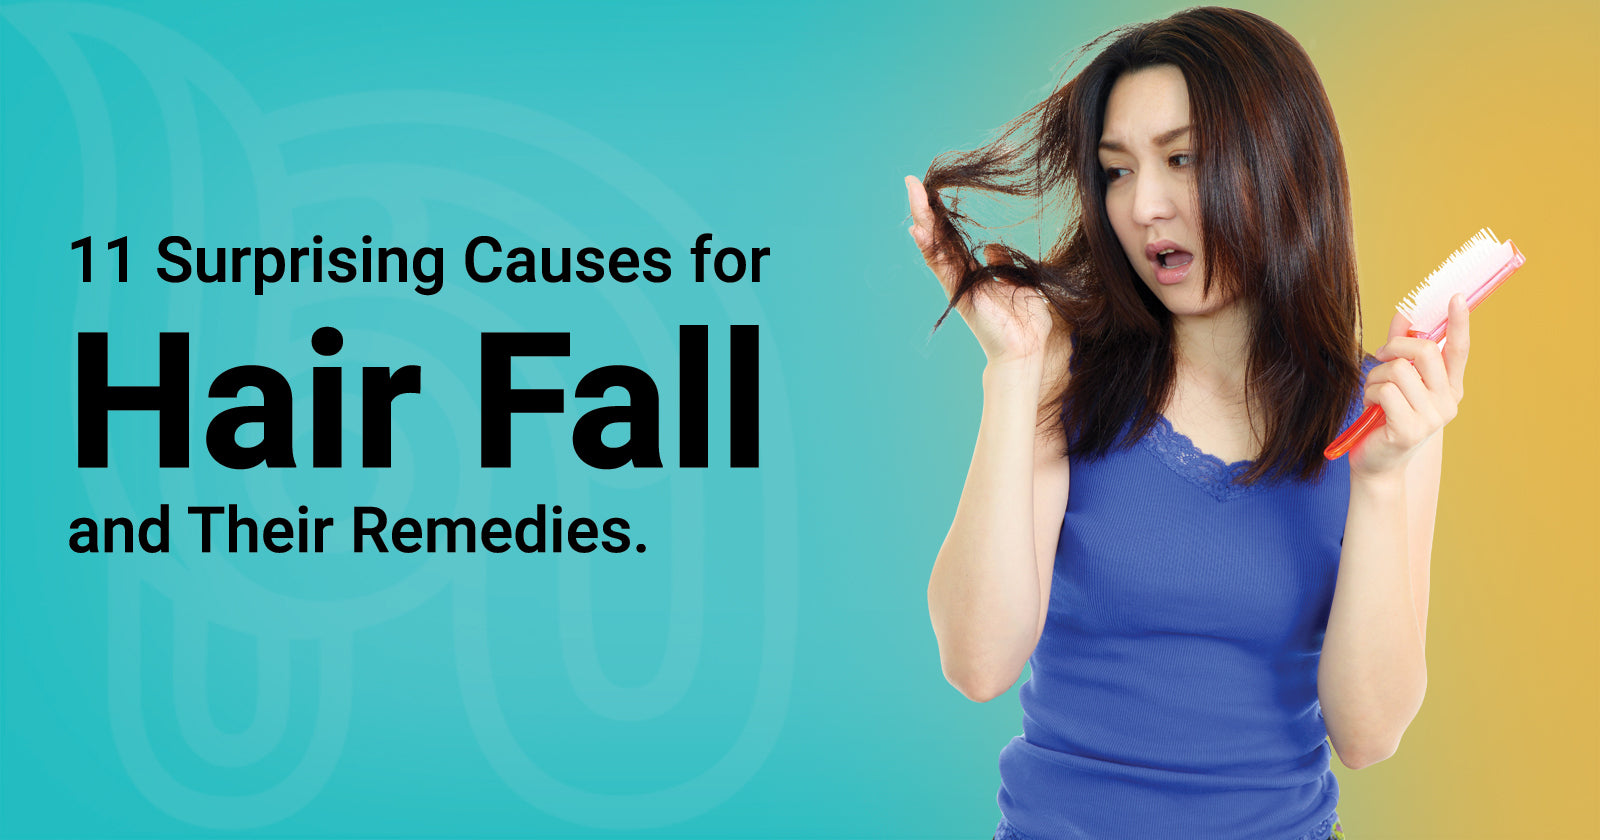 11 Surprising Causes for Hair Fall and Their Remedies